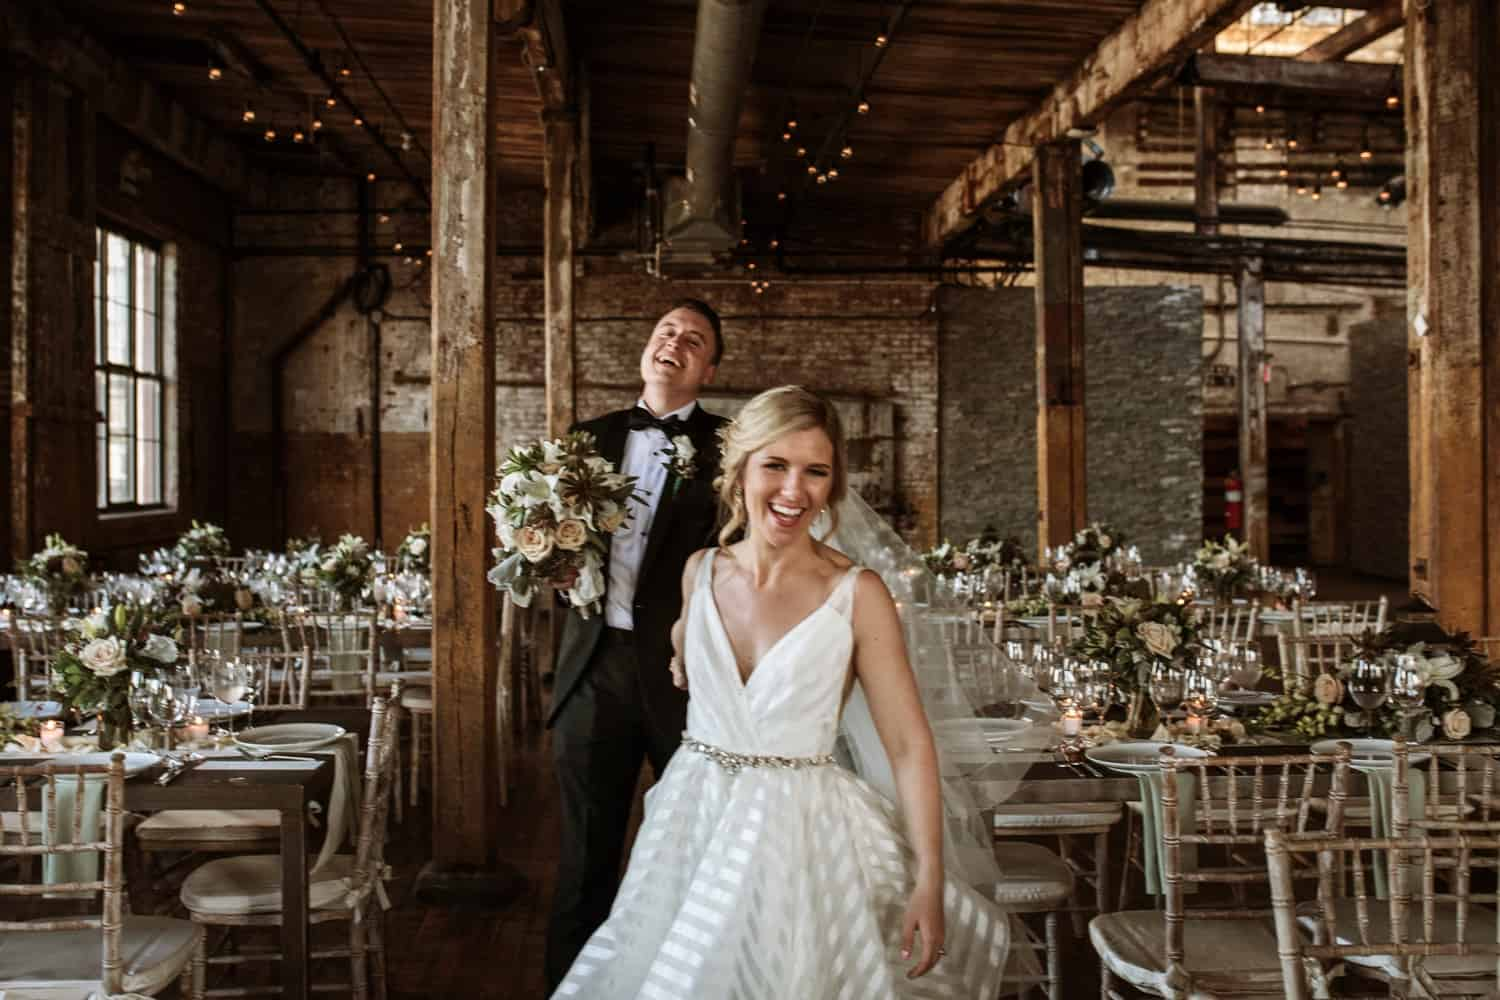 A Beautiful Love Story At The Greenpoint Loft In Brooklyn